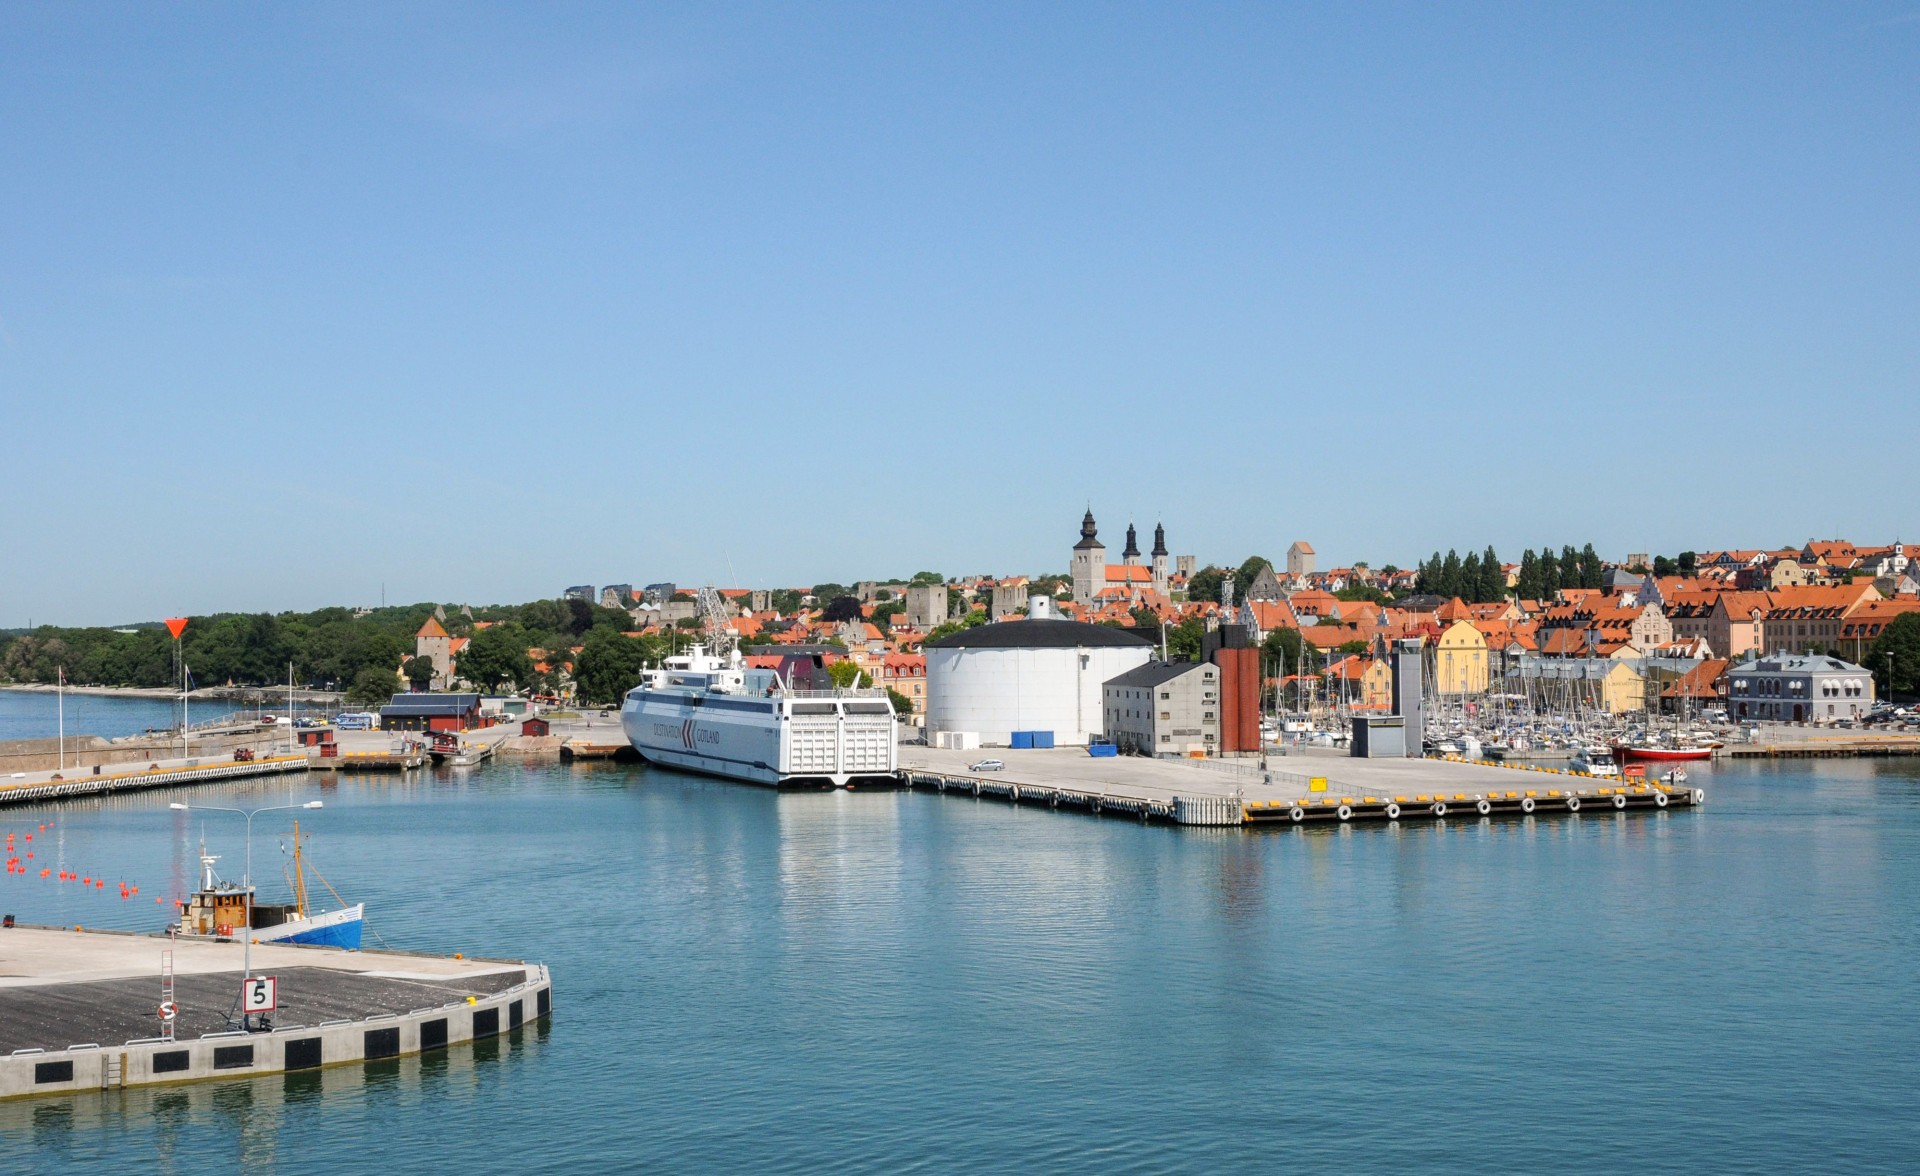 Visby pic